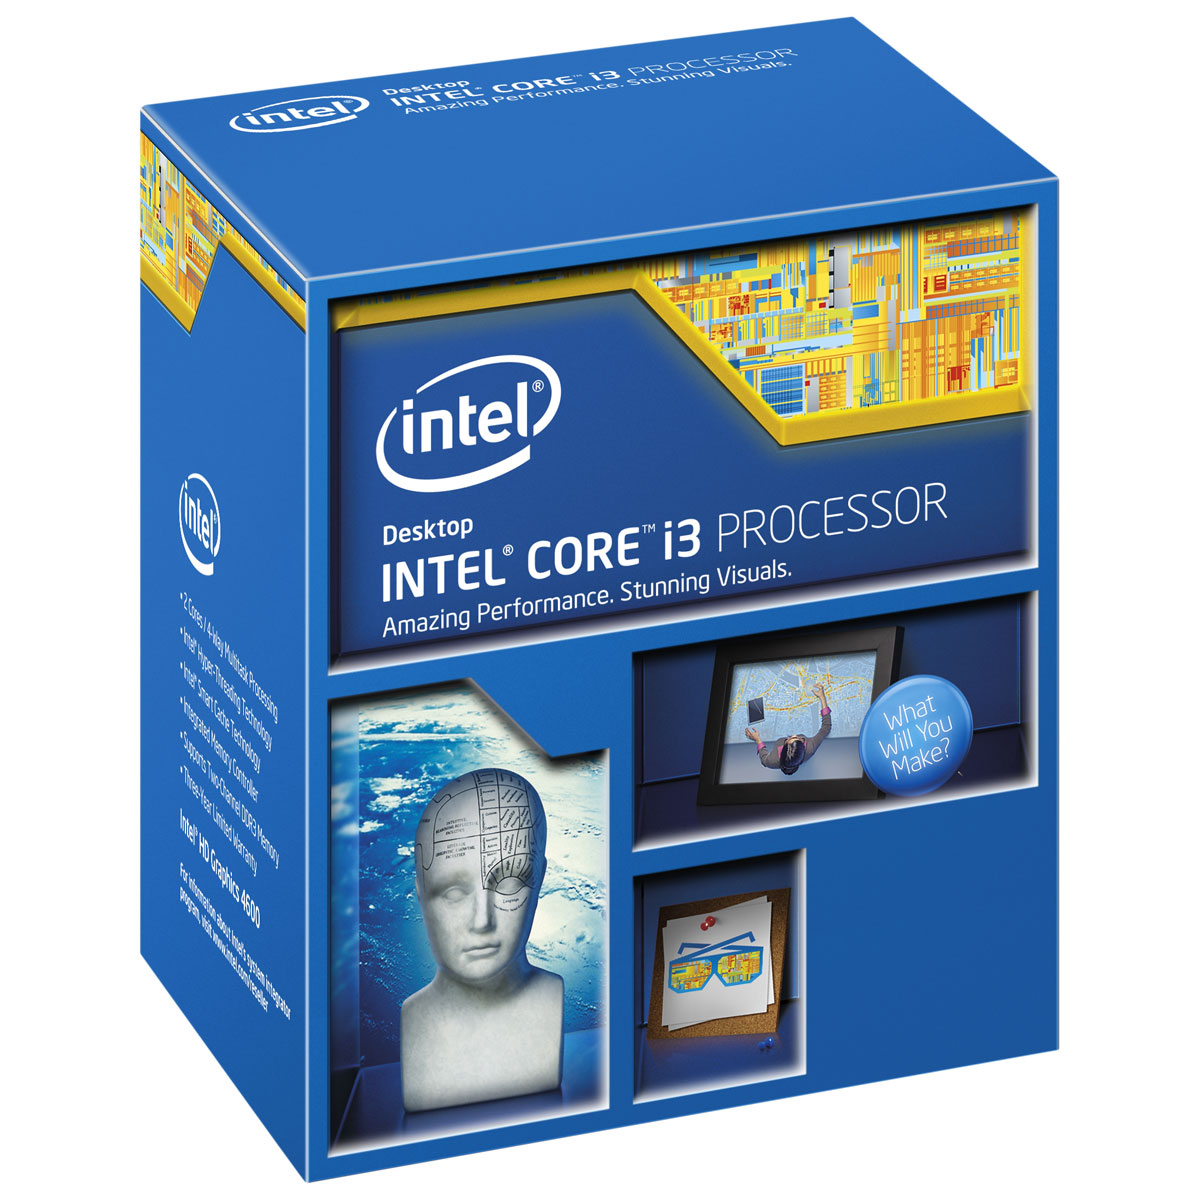 Processeur Intel Core i3-4160 (3.6 GHz) Processeur Dual Core Socket 1150 Cache L3 3 Mo Intel HD Graphics 4400 0.022 micron (version boîte - garantie Intel 3 ans)